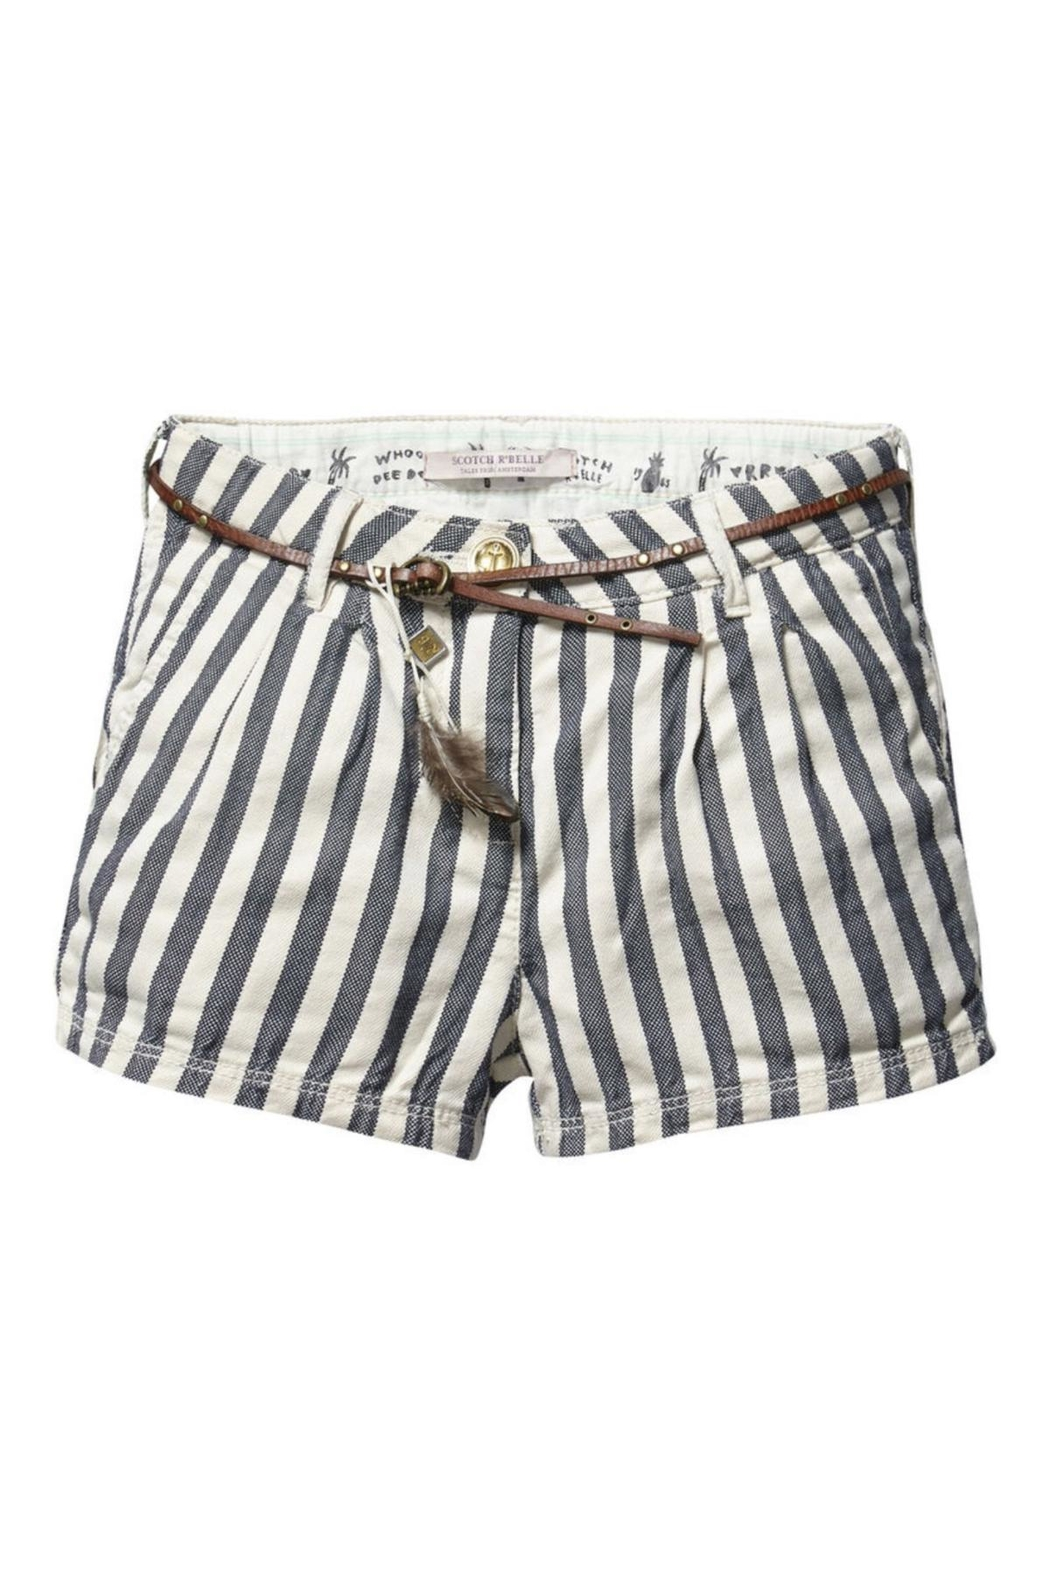 Scotch R'Belle Railroad Stripe Short - Main Image